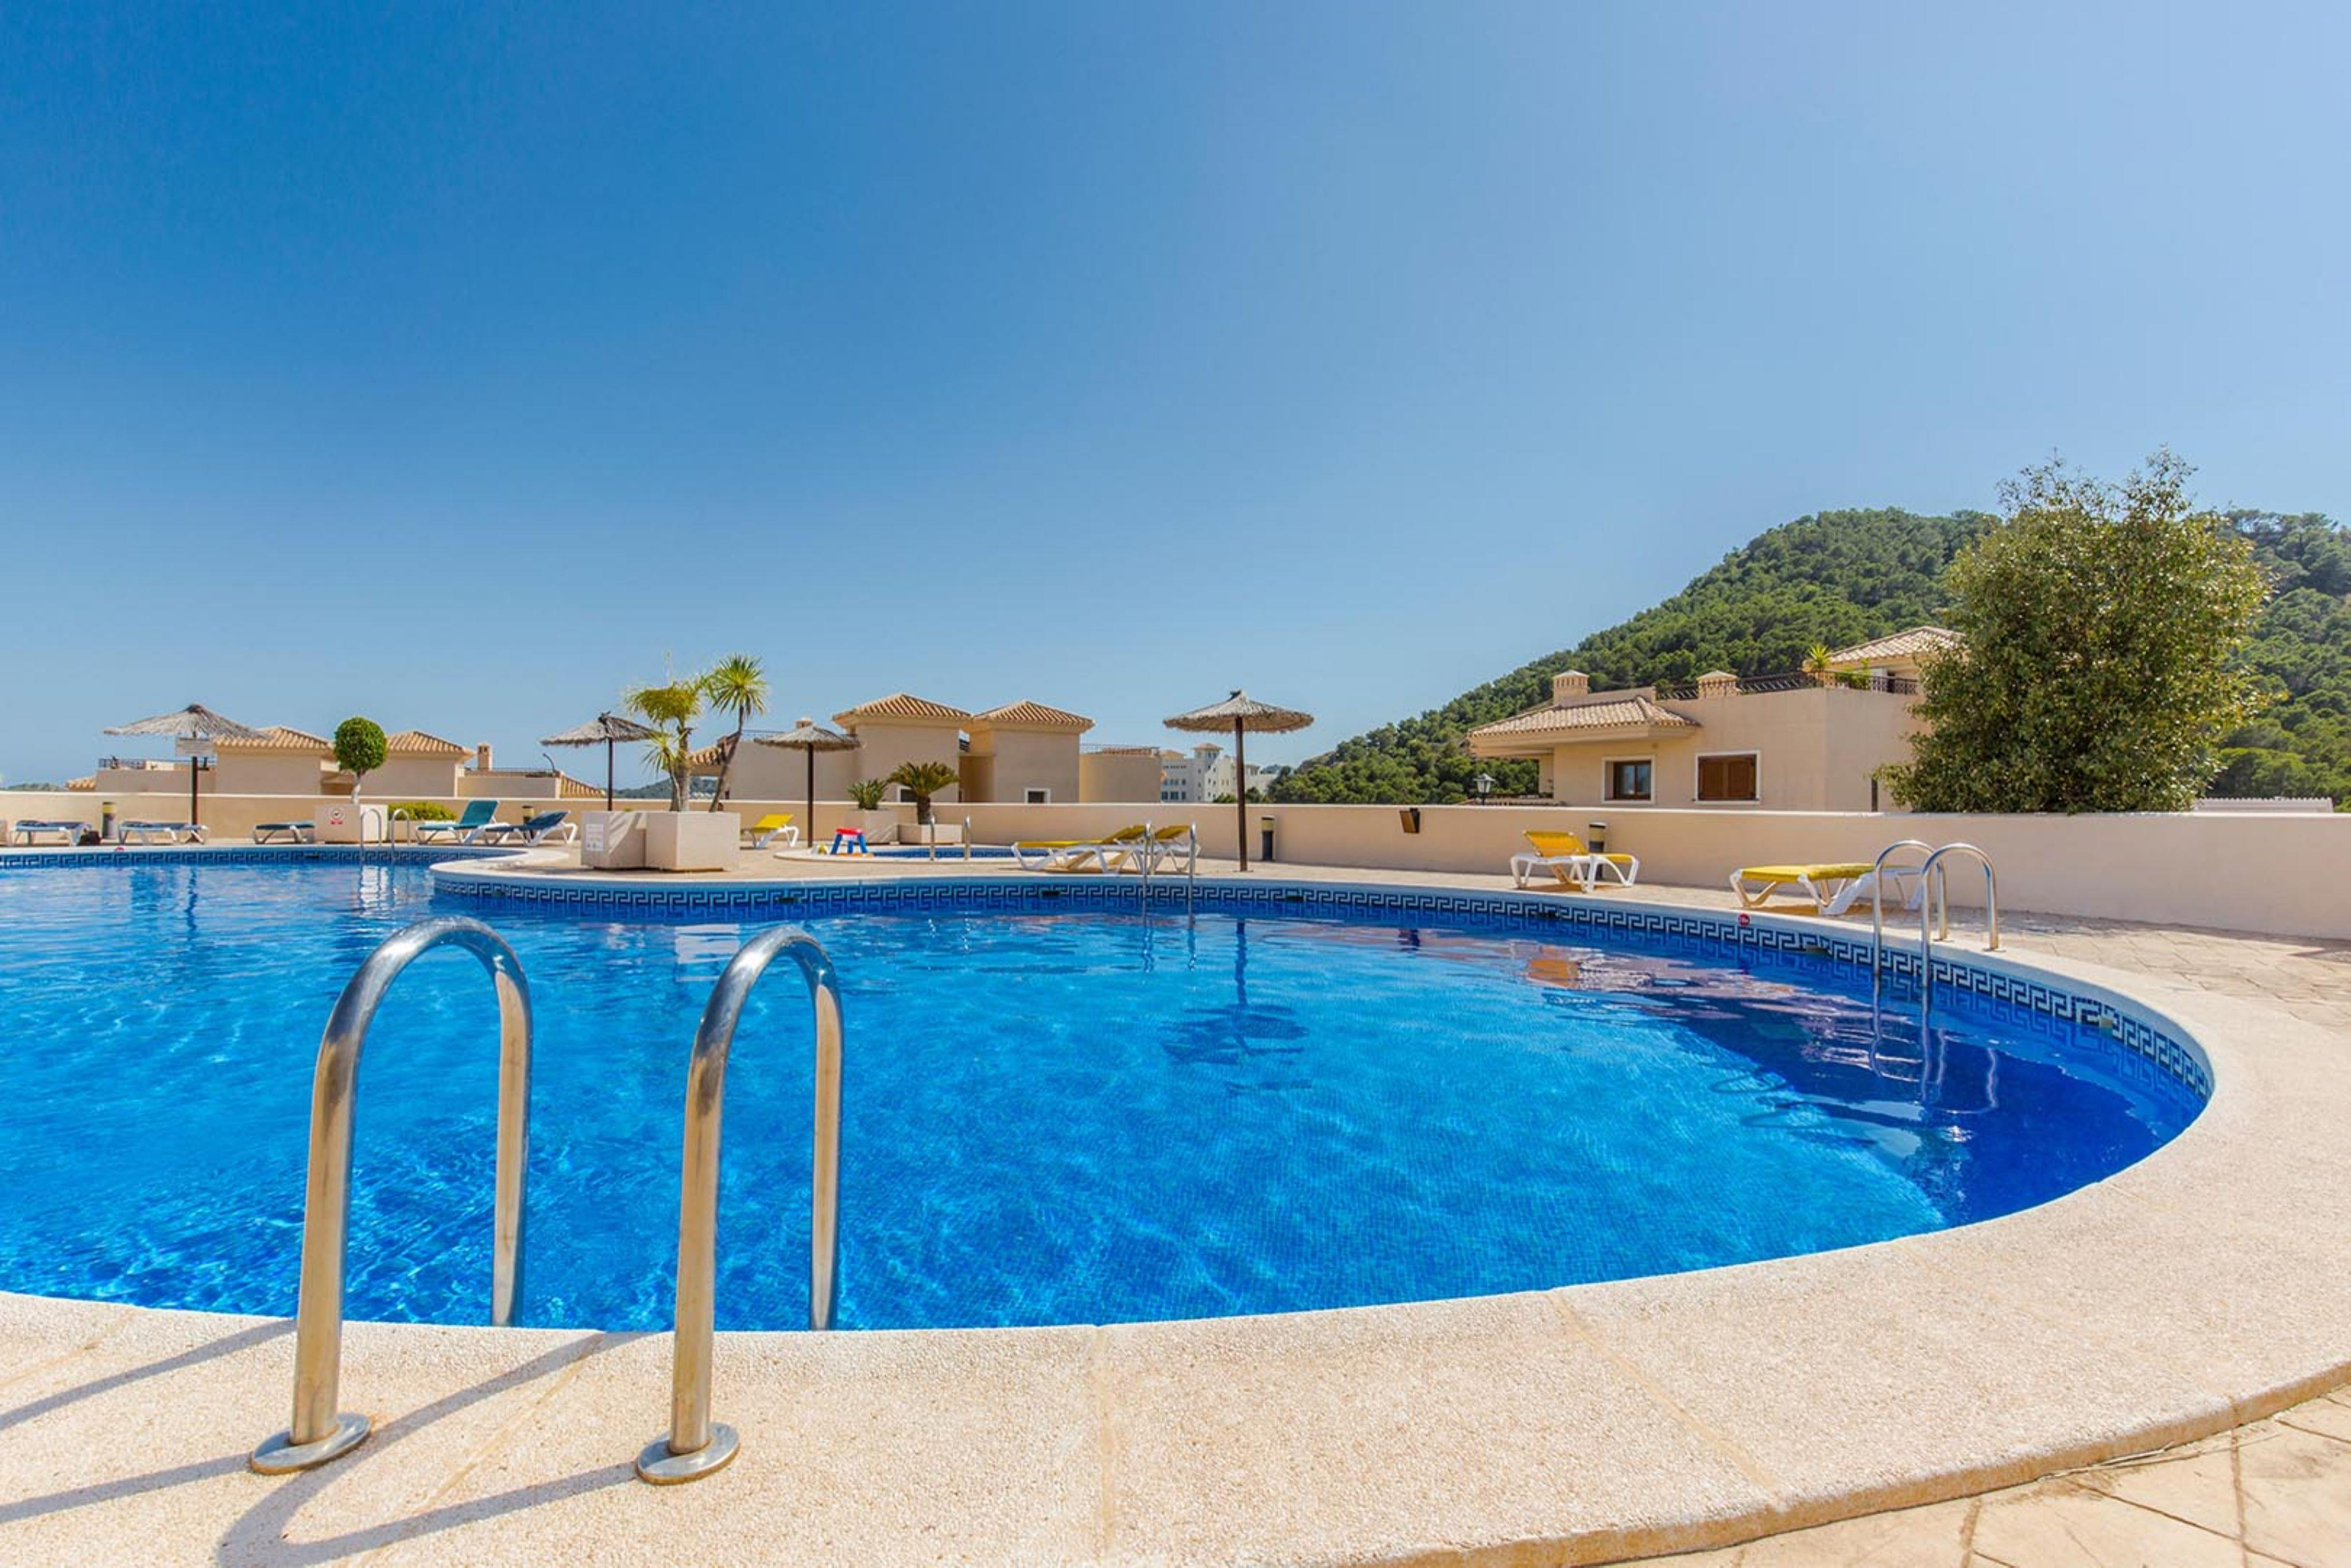 La Manga Club Resort - Buena Vista 578 3 Bedrooms, for rent